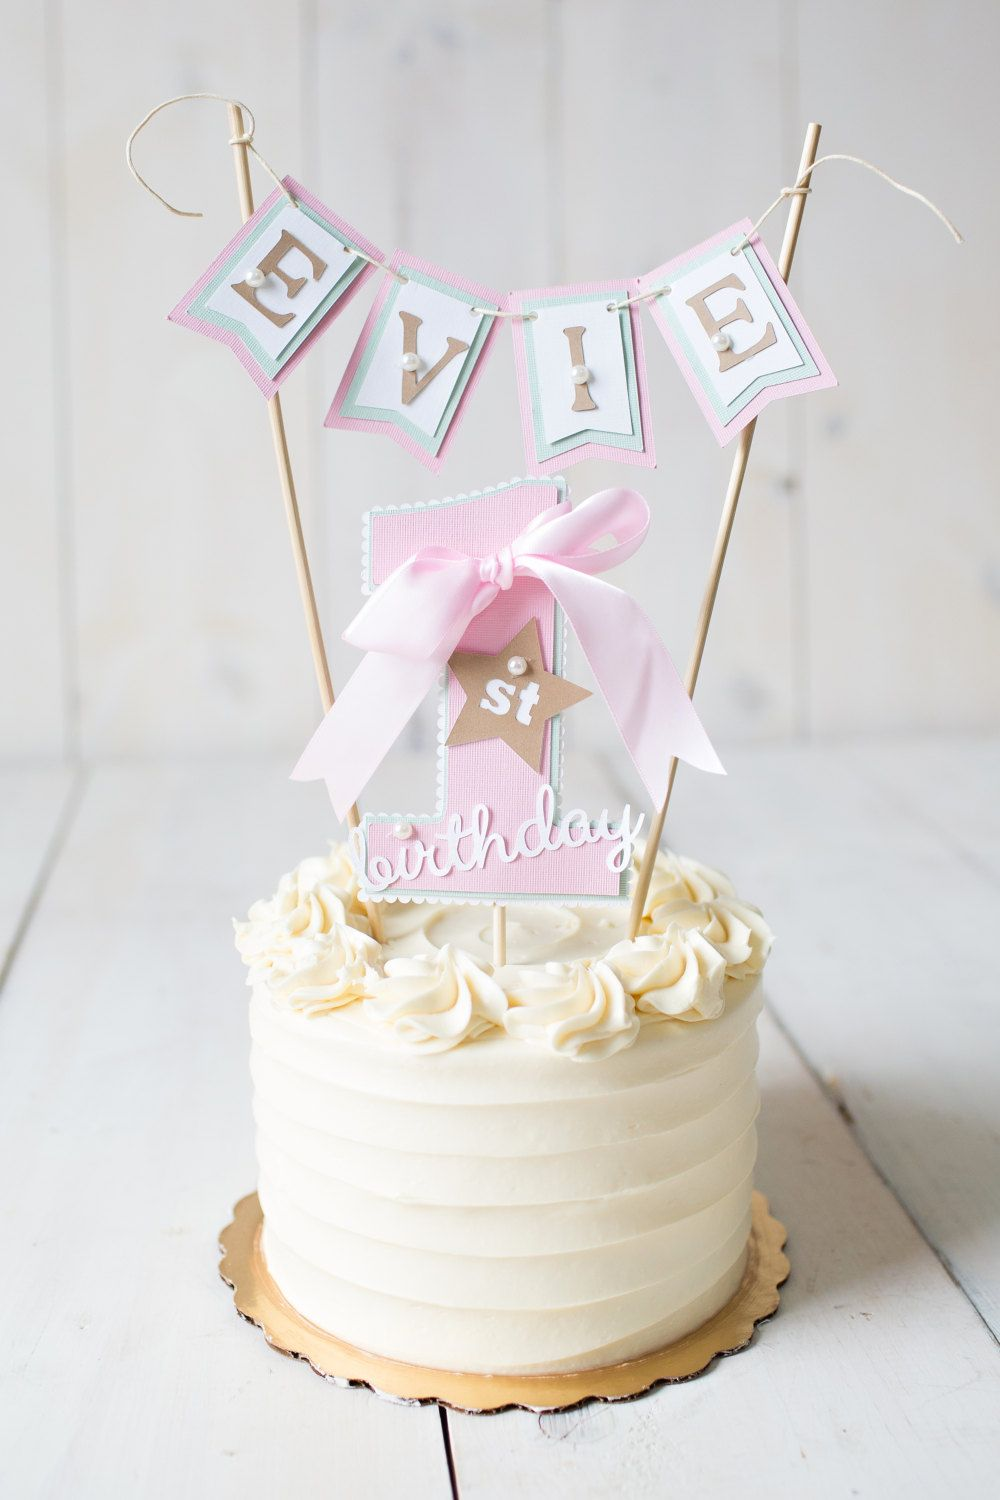 Cake Decoration Ideas For 1st Birthday : Girl / First Birthday cake topper. 1st birthday party ...